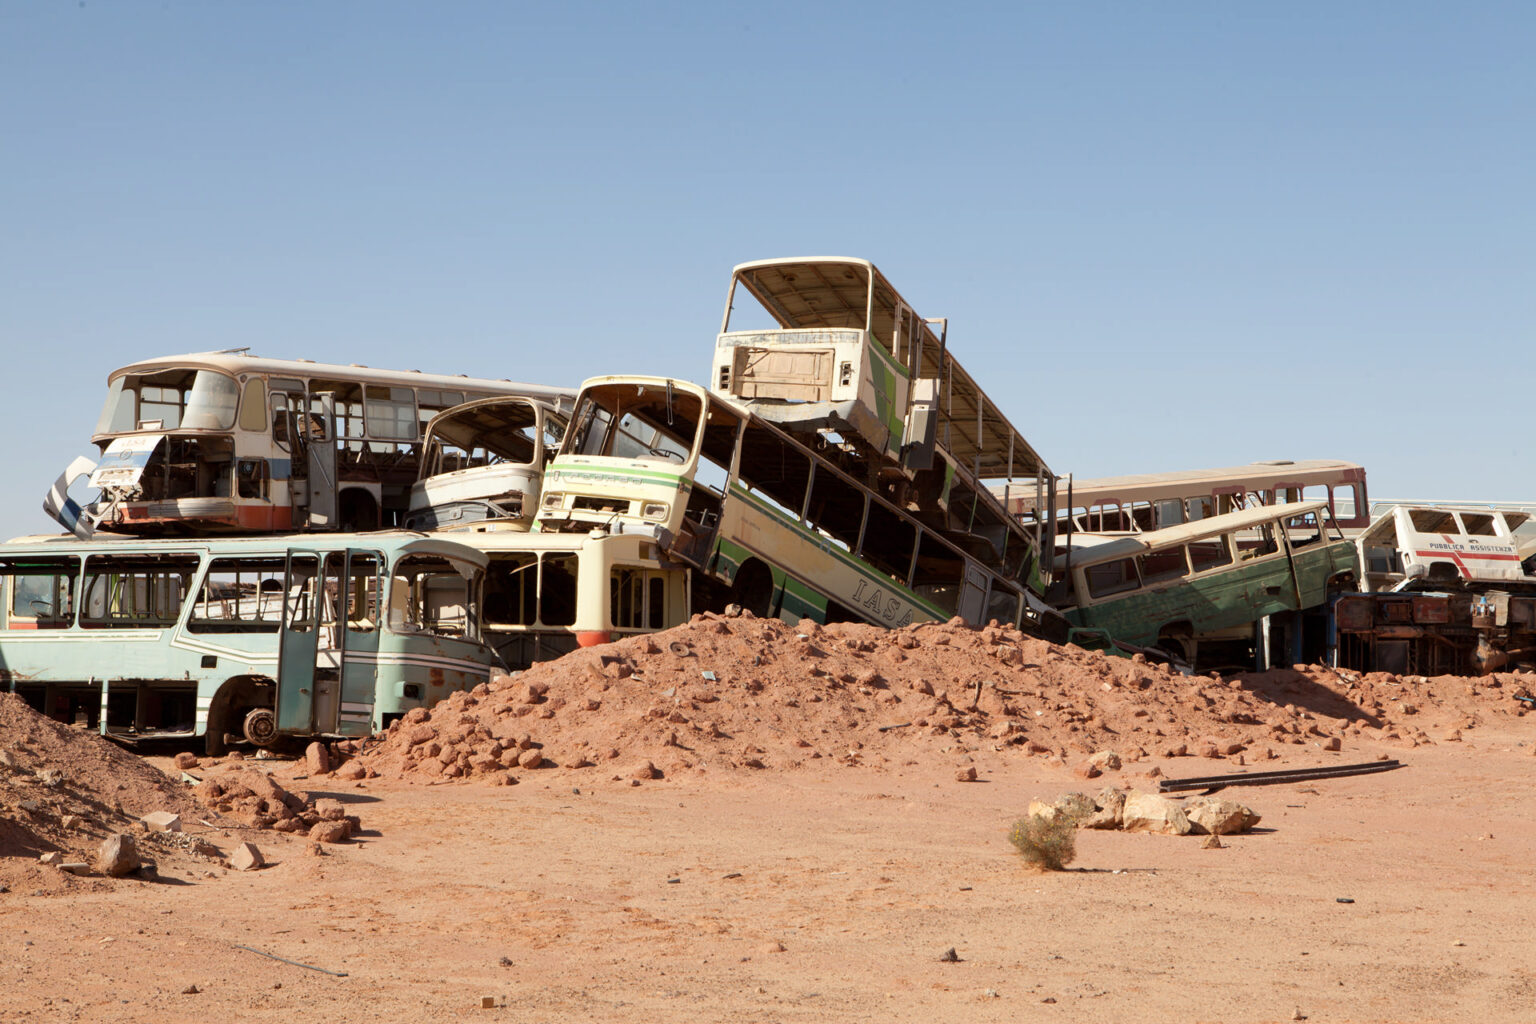 Abandoned busses, Tindouf Refugee Camp, Algeria, 2015